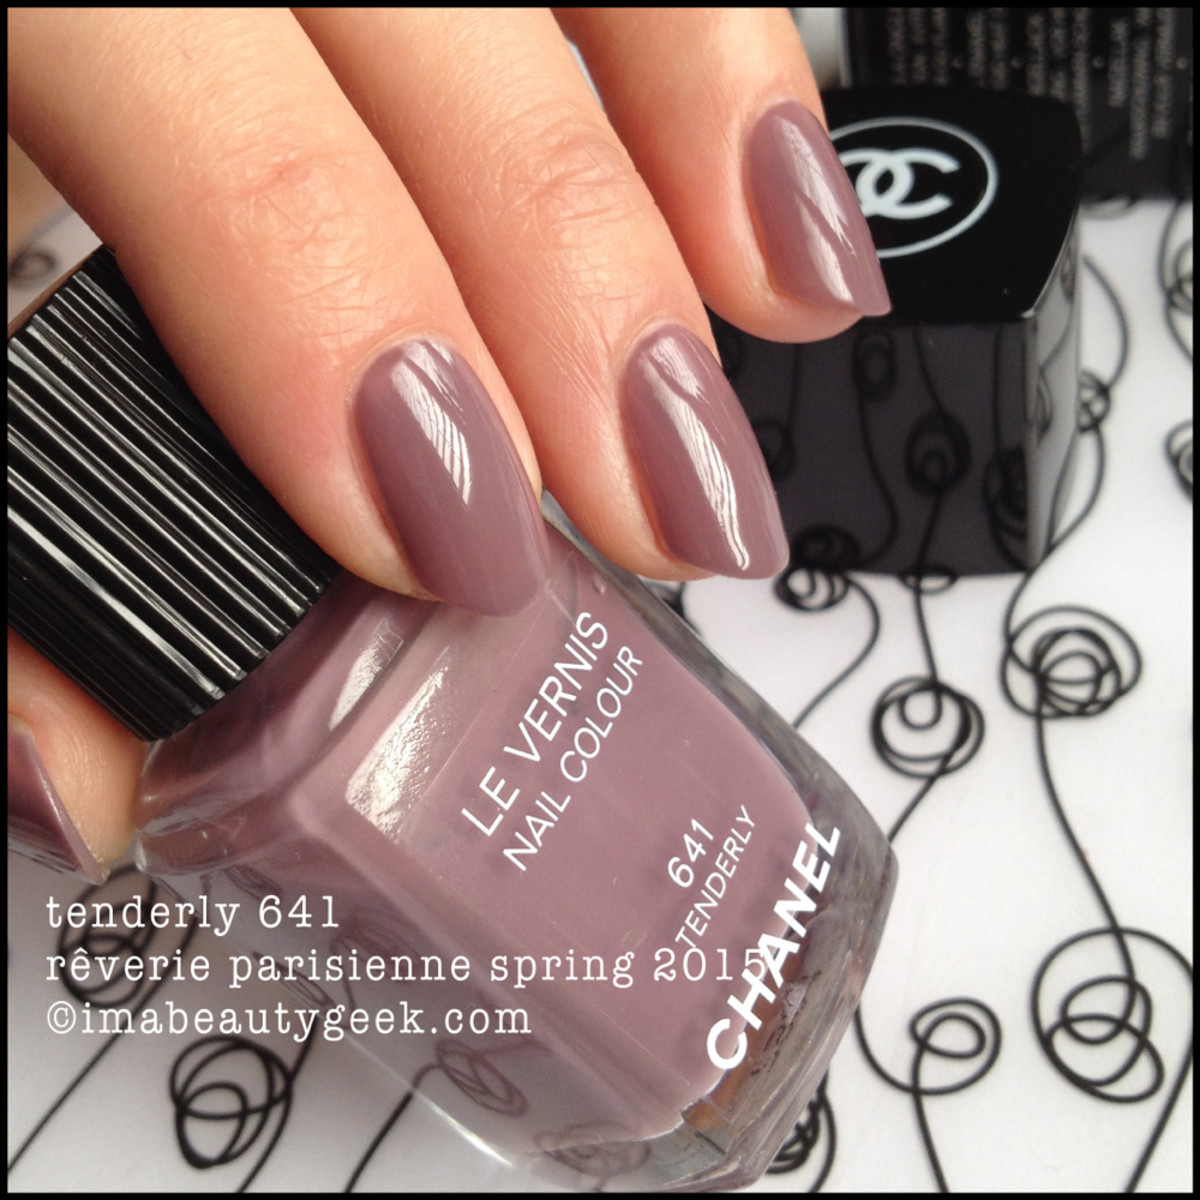 Chanel Tenderly 641 Reverie Parisienne spring 2015